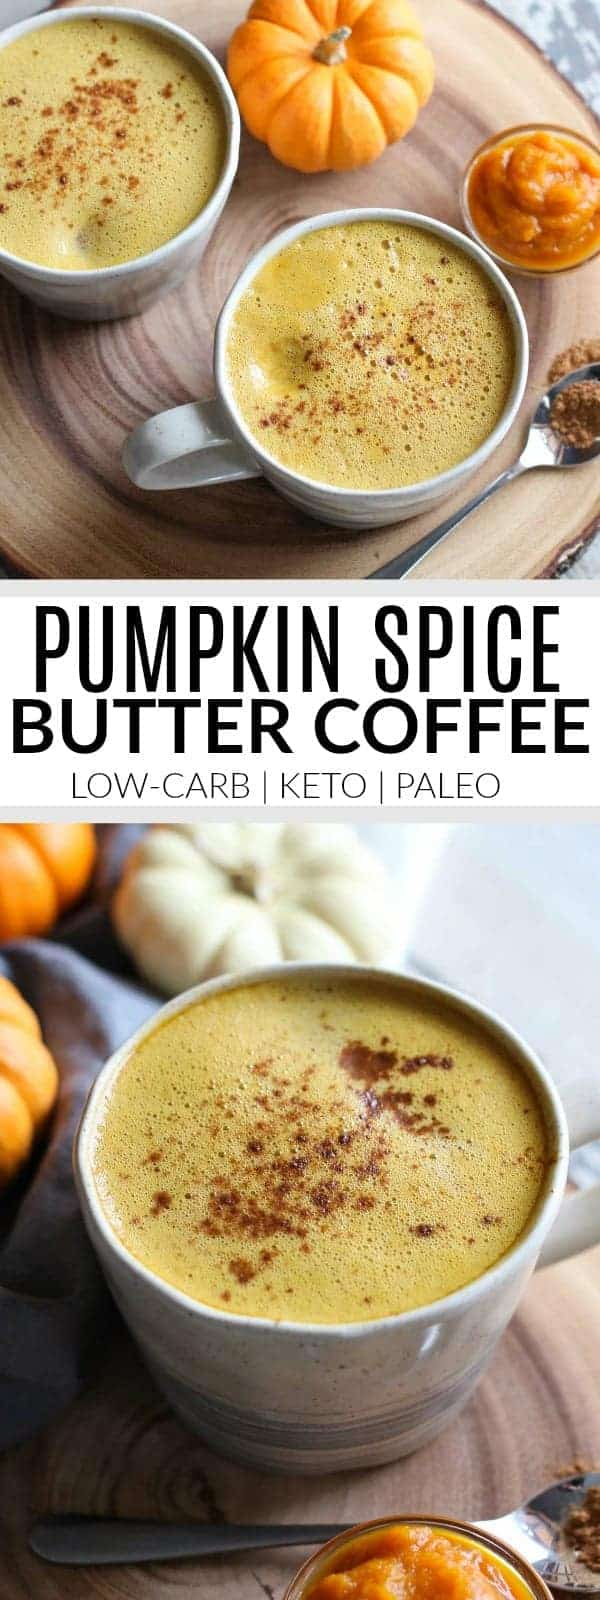 Pinterest image for Pumpkin Spice Butter Coffee